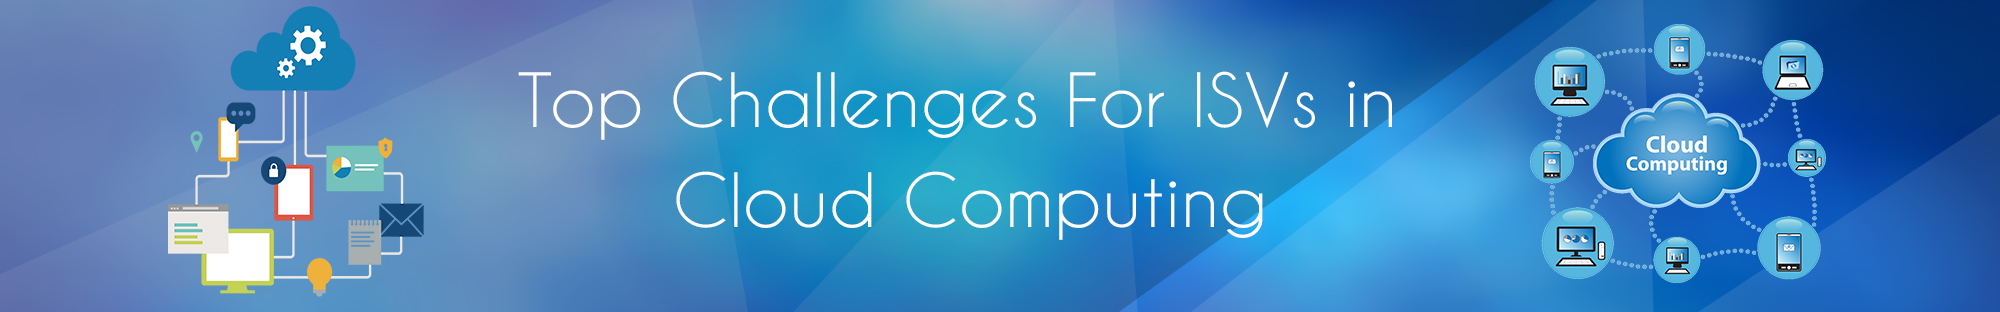 Top Challenges For ISVs in Cloud Computing_Blog